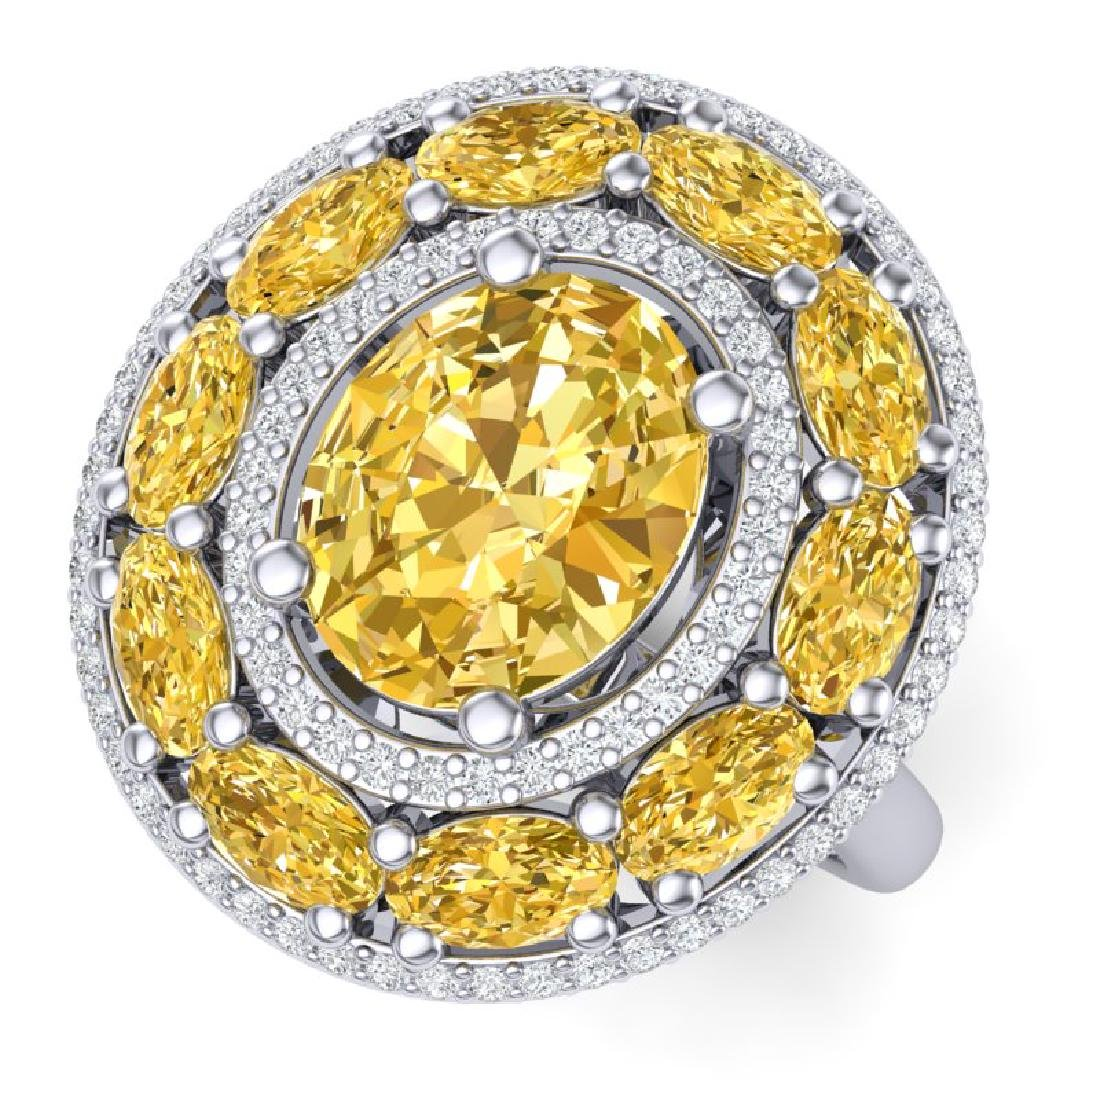 7.21 CTW Royalty Canary Citrine & VS Diamond Ring 18K